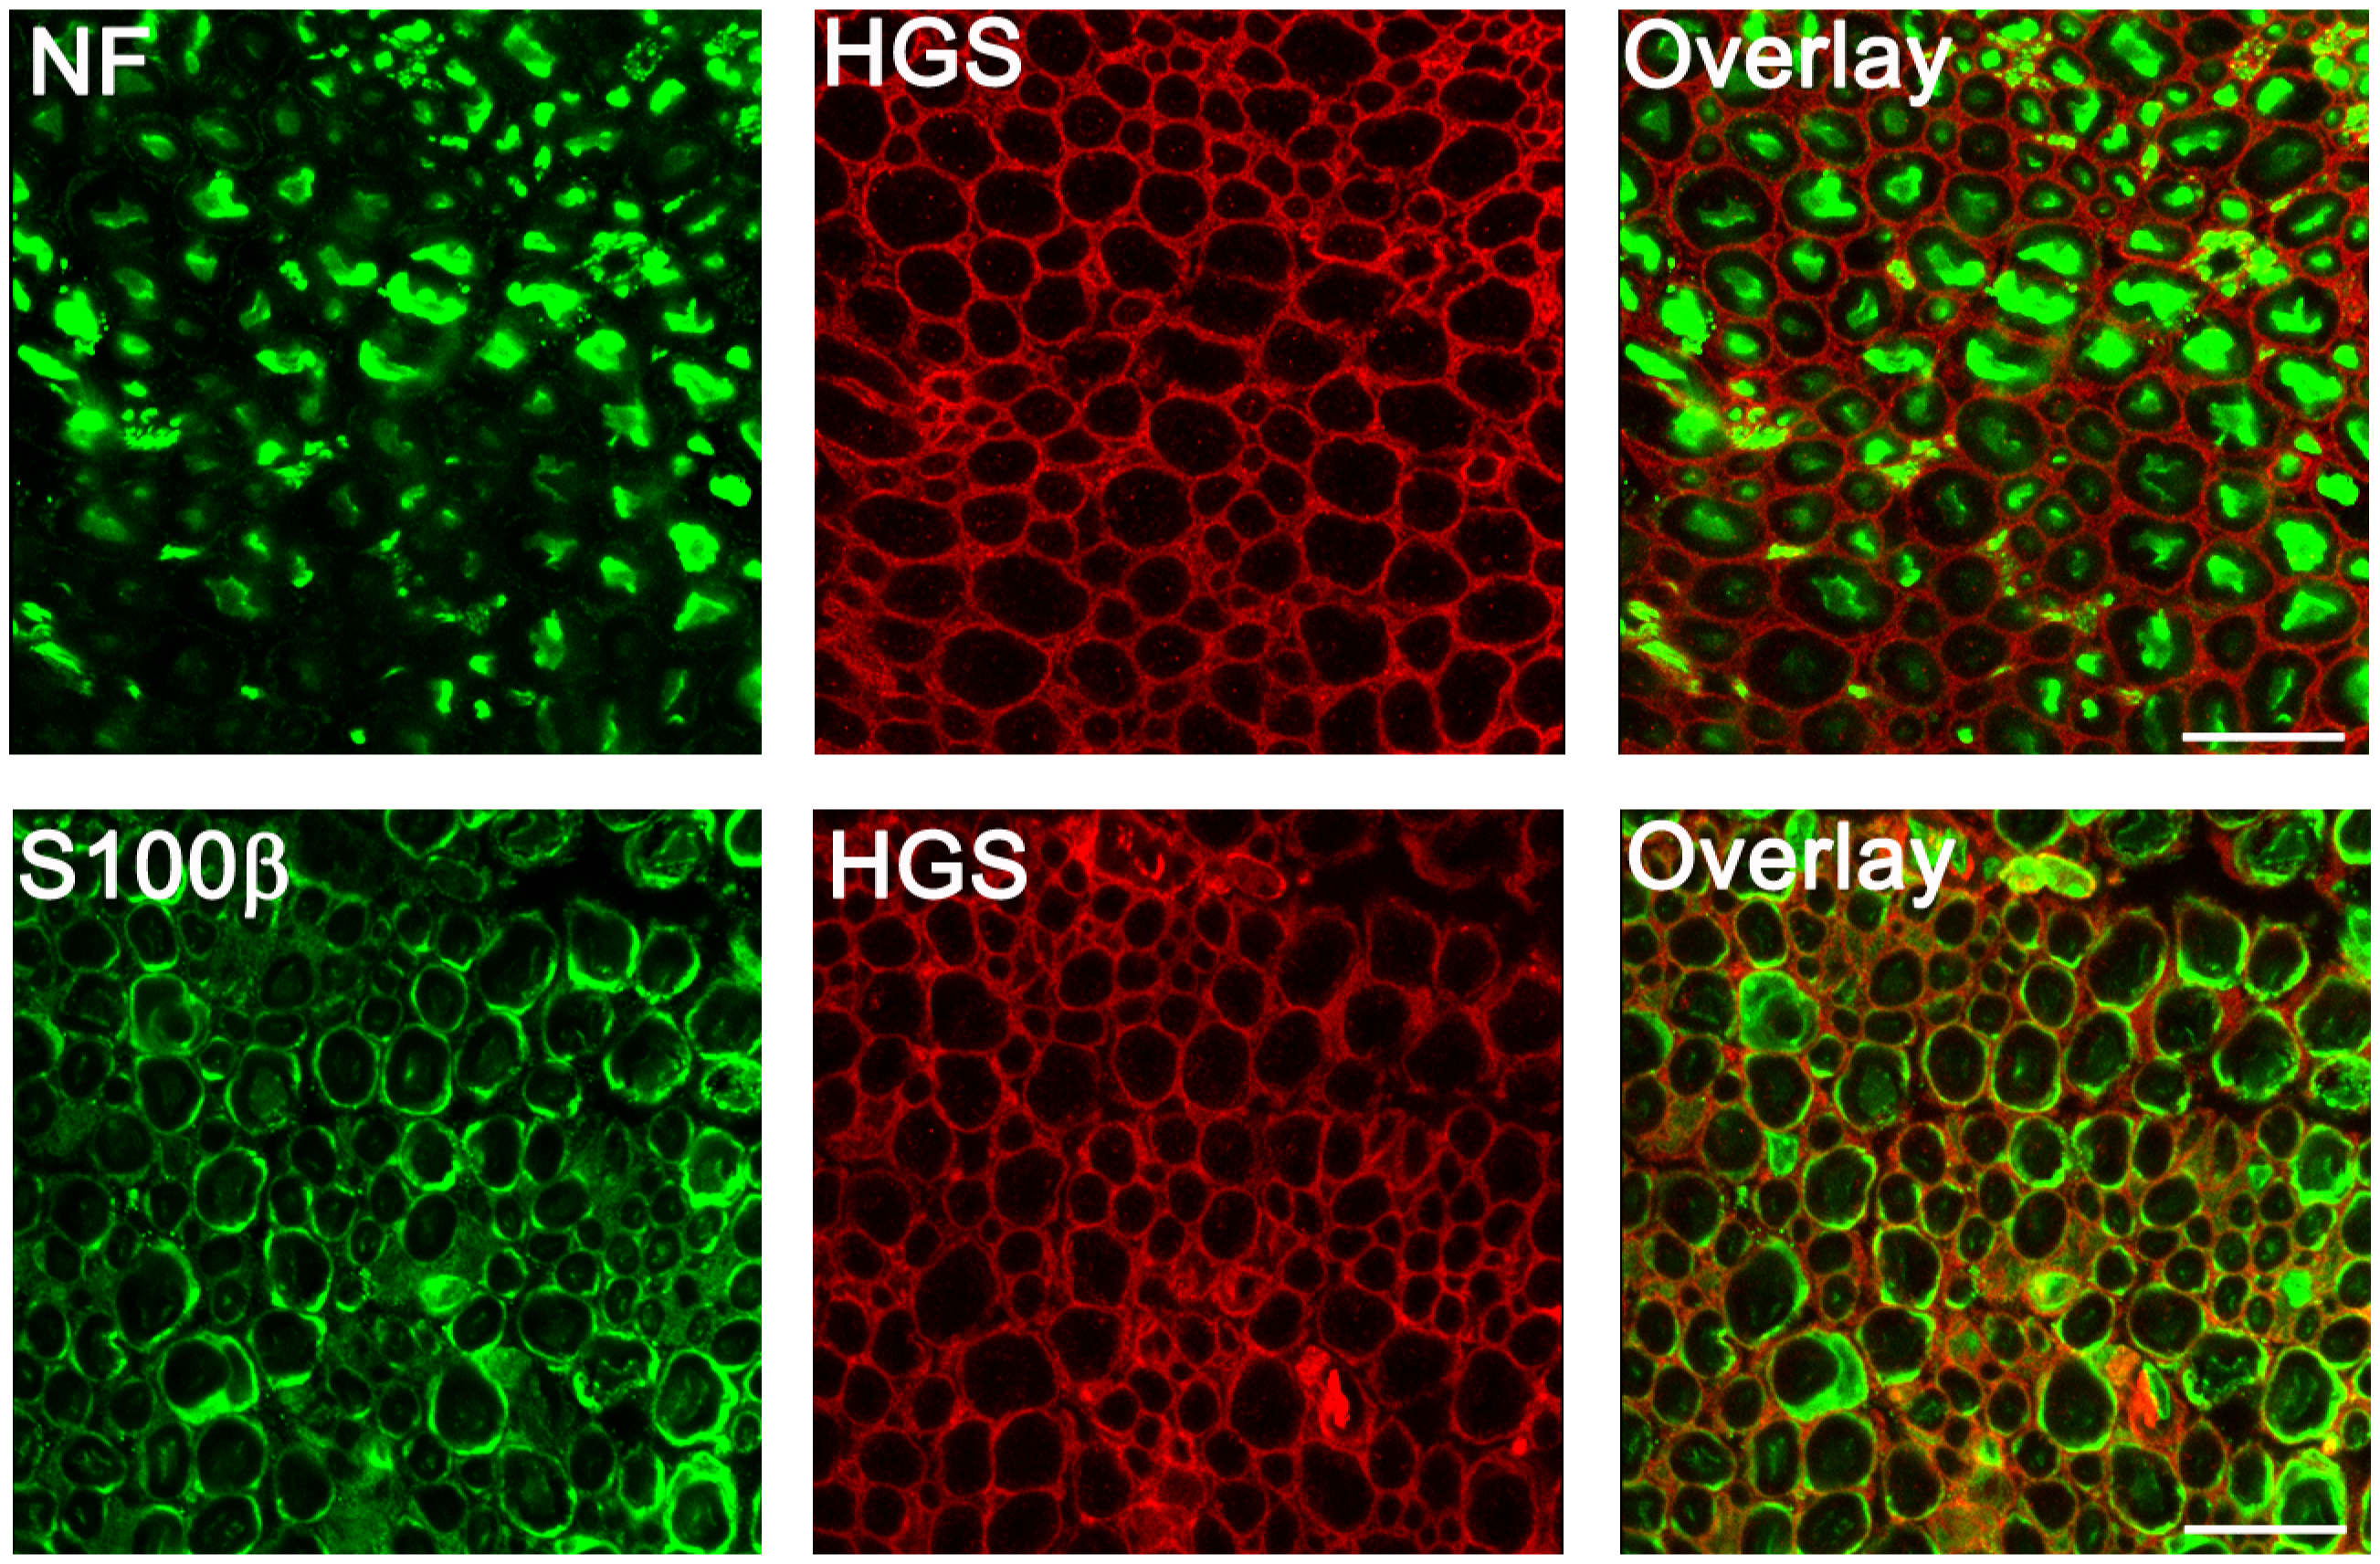 Distribution of HGS in sciatic nerves of 4-week-old <i>Hgs</i><sup><i>+/+</i></sup>mice.